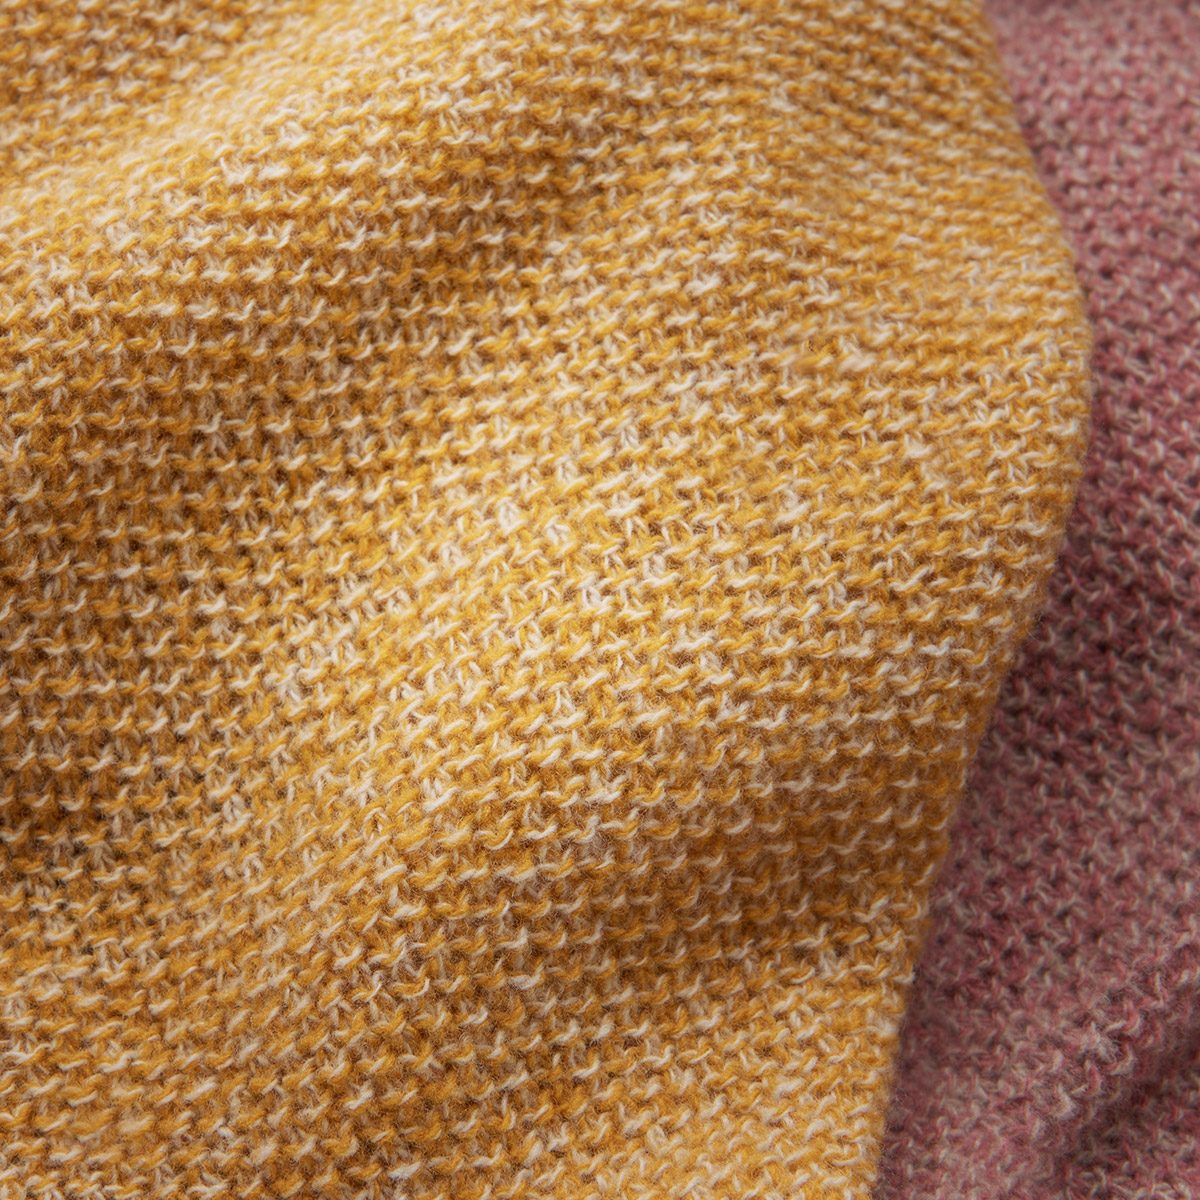 WOL wool blankets in amber and dusty rose